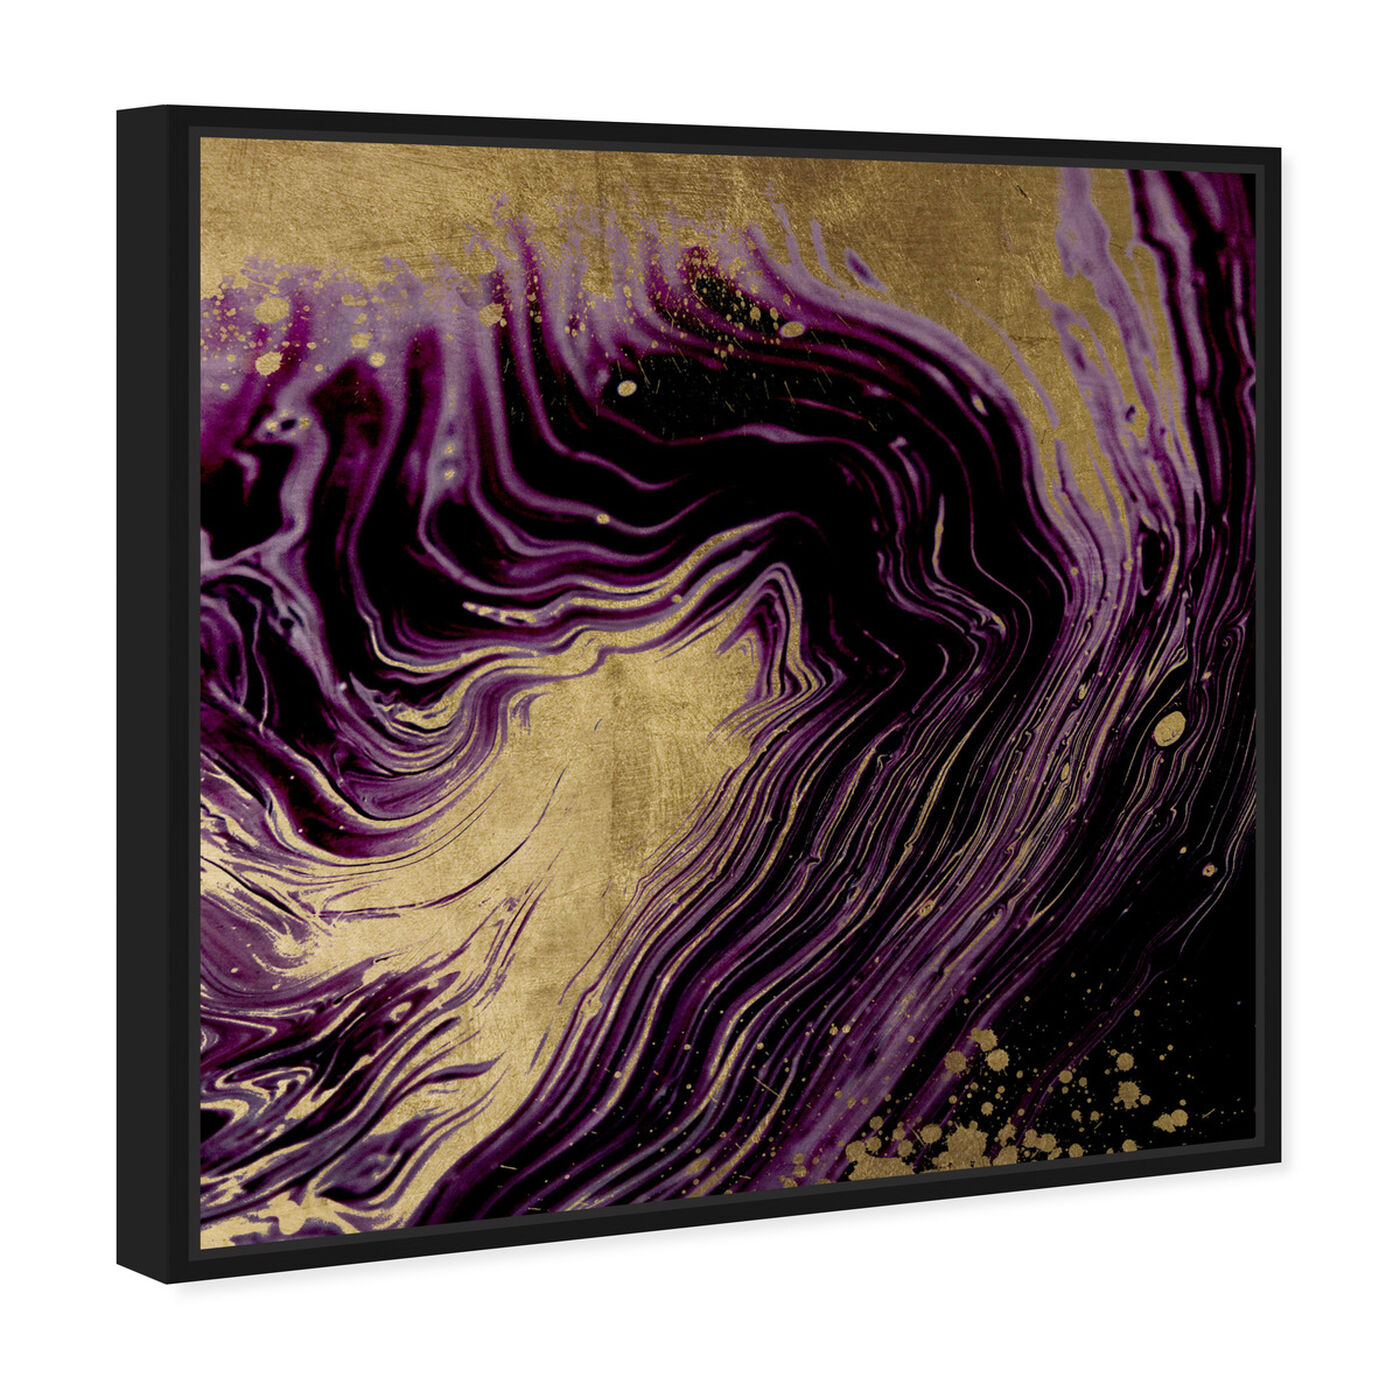 Angled view of Plum and Gold Agate featuring abstract and crystals art.